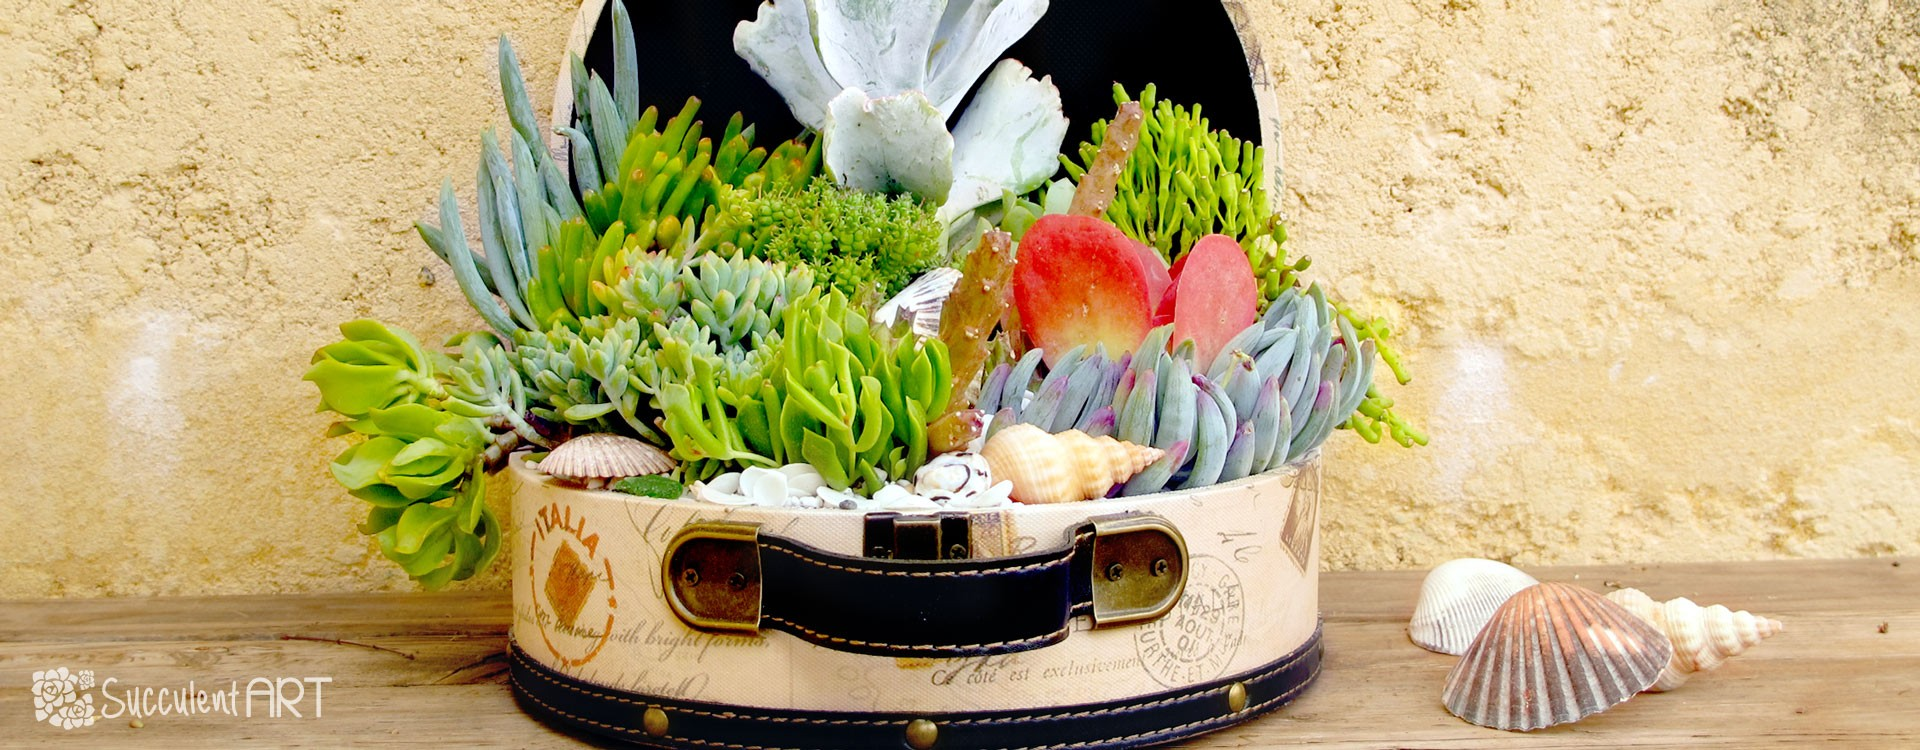 How to make a Succulent Under the Sea Chest